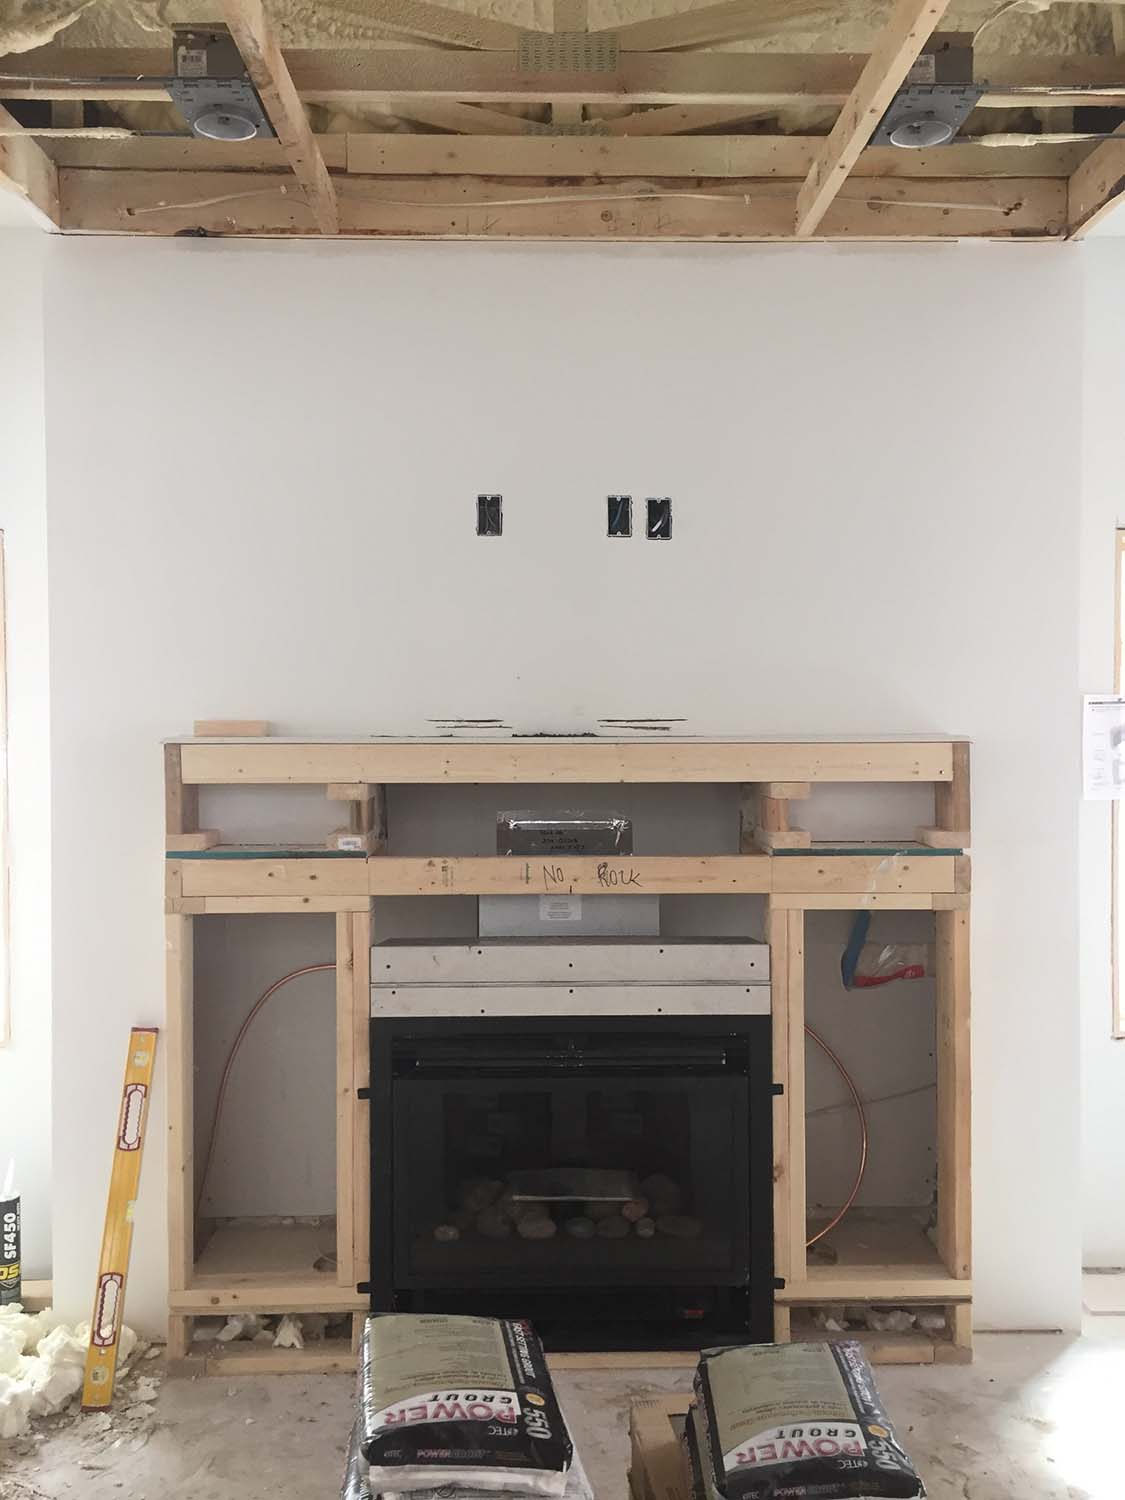 "We had to make a last-minute design change when we found that the fireplace required 10"" more headroom to provide a safe separation to combustibles.  Where the fireplace was to be 6"" above the floor and with a lower mantel, it's now down at floor level and the mantel has been raised up.  Who knows?  Maybe it will look better this way."